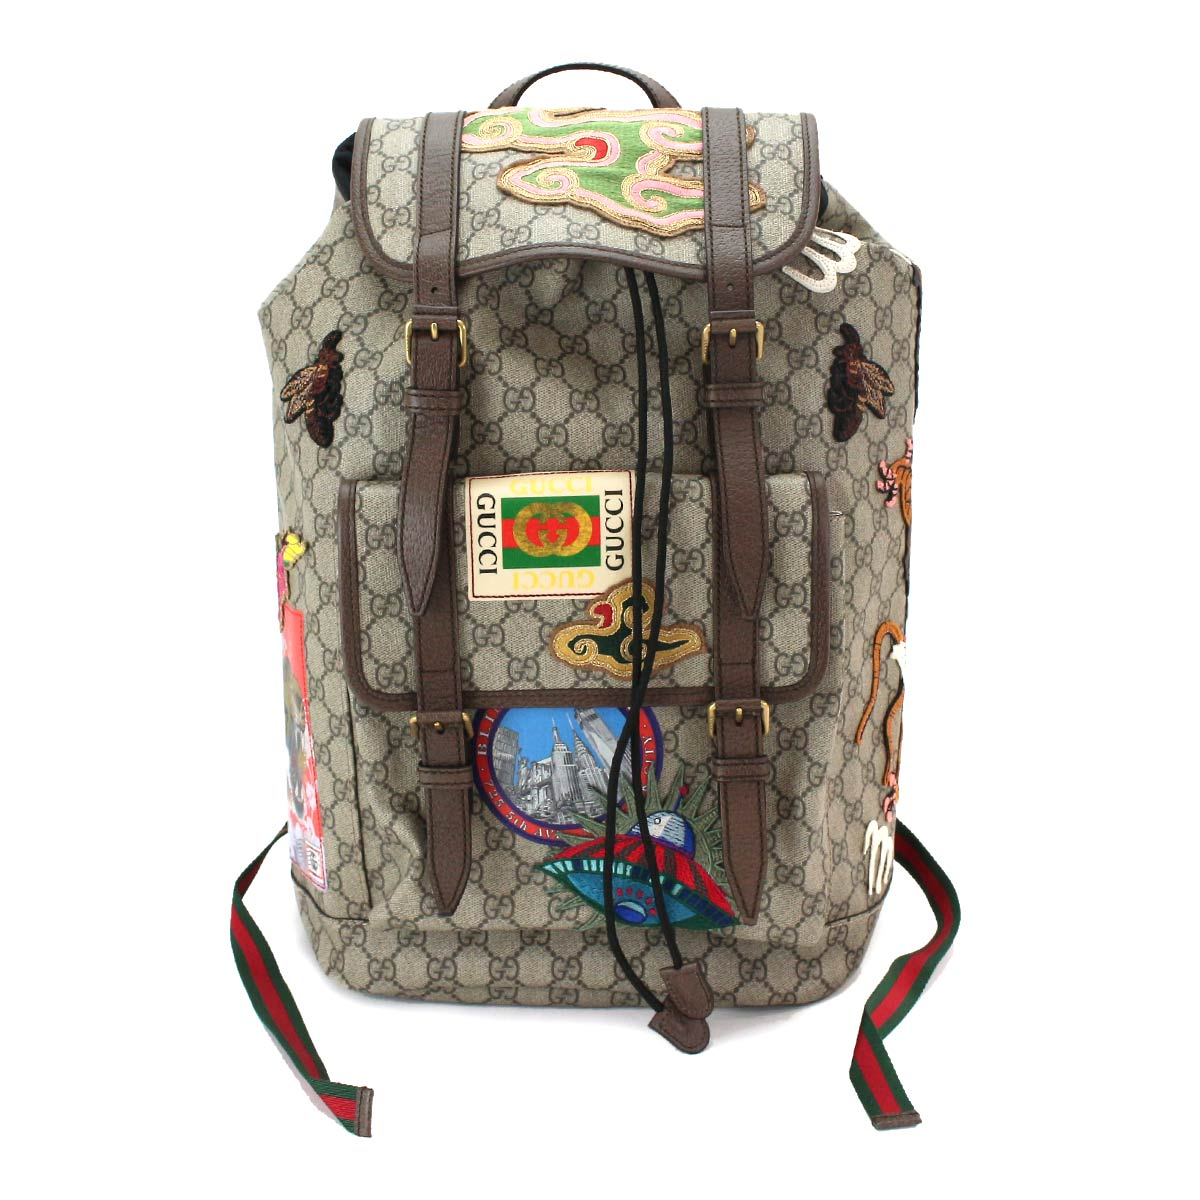 4dd32611a61e Details about Auth GUCCI Courrier Soft GG Supreme Backpack Canvas Beige  473869 213317 90069533